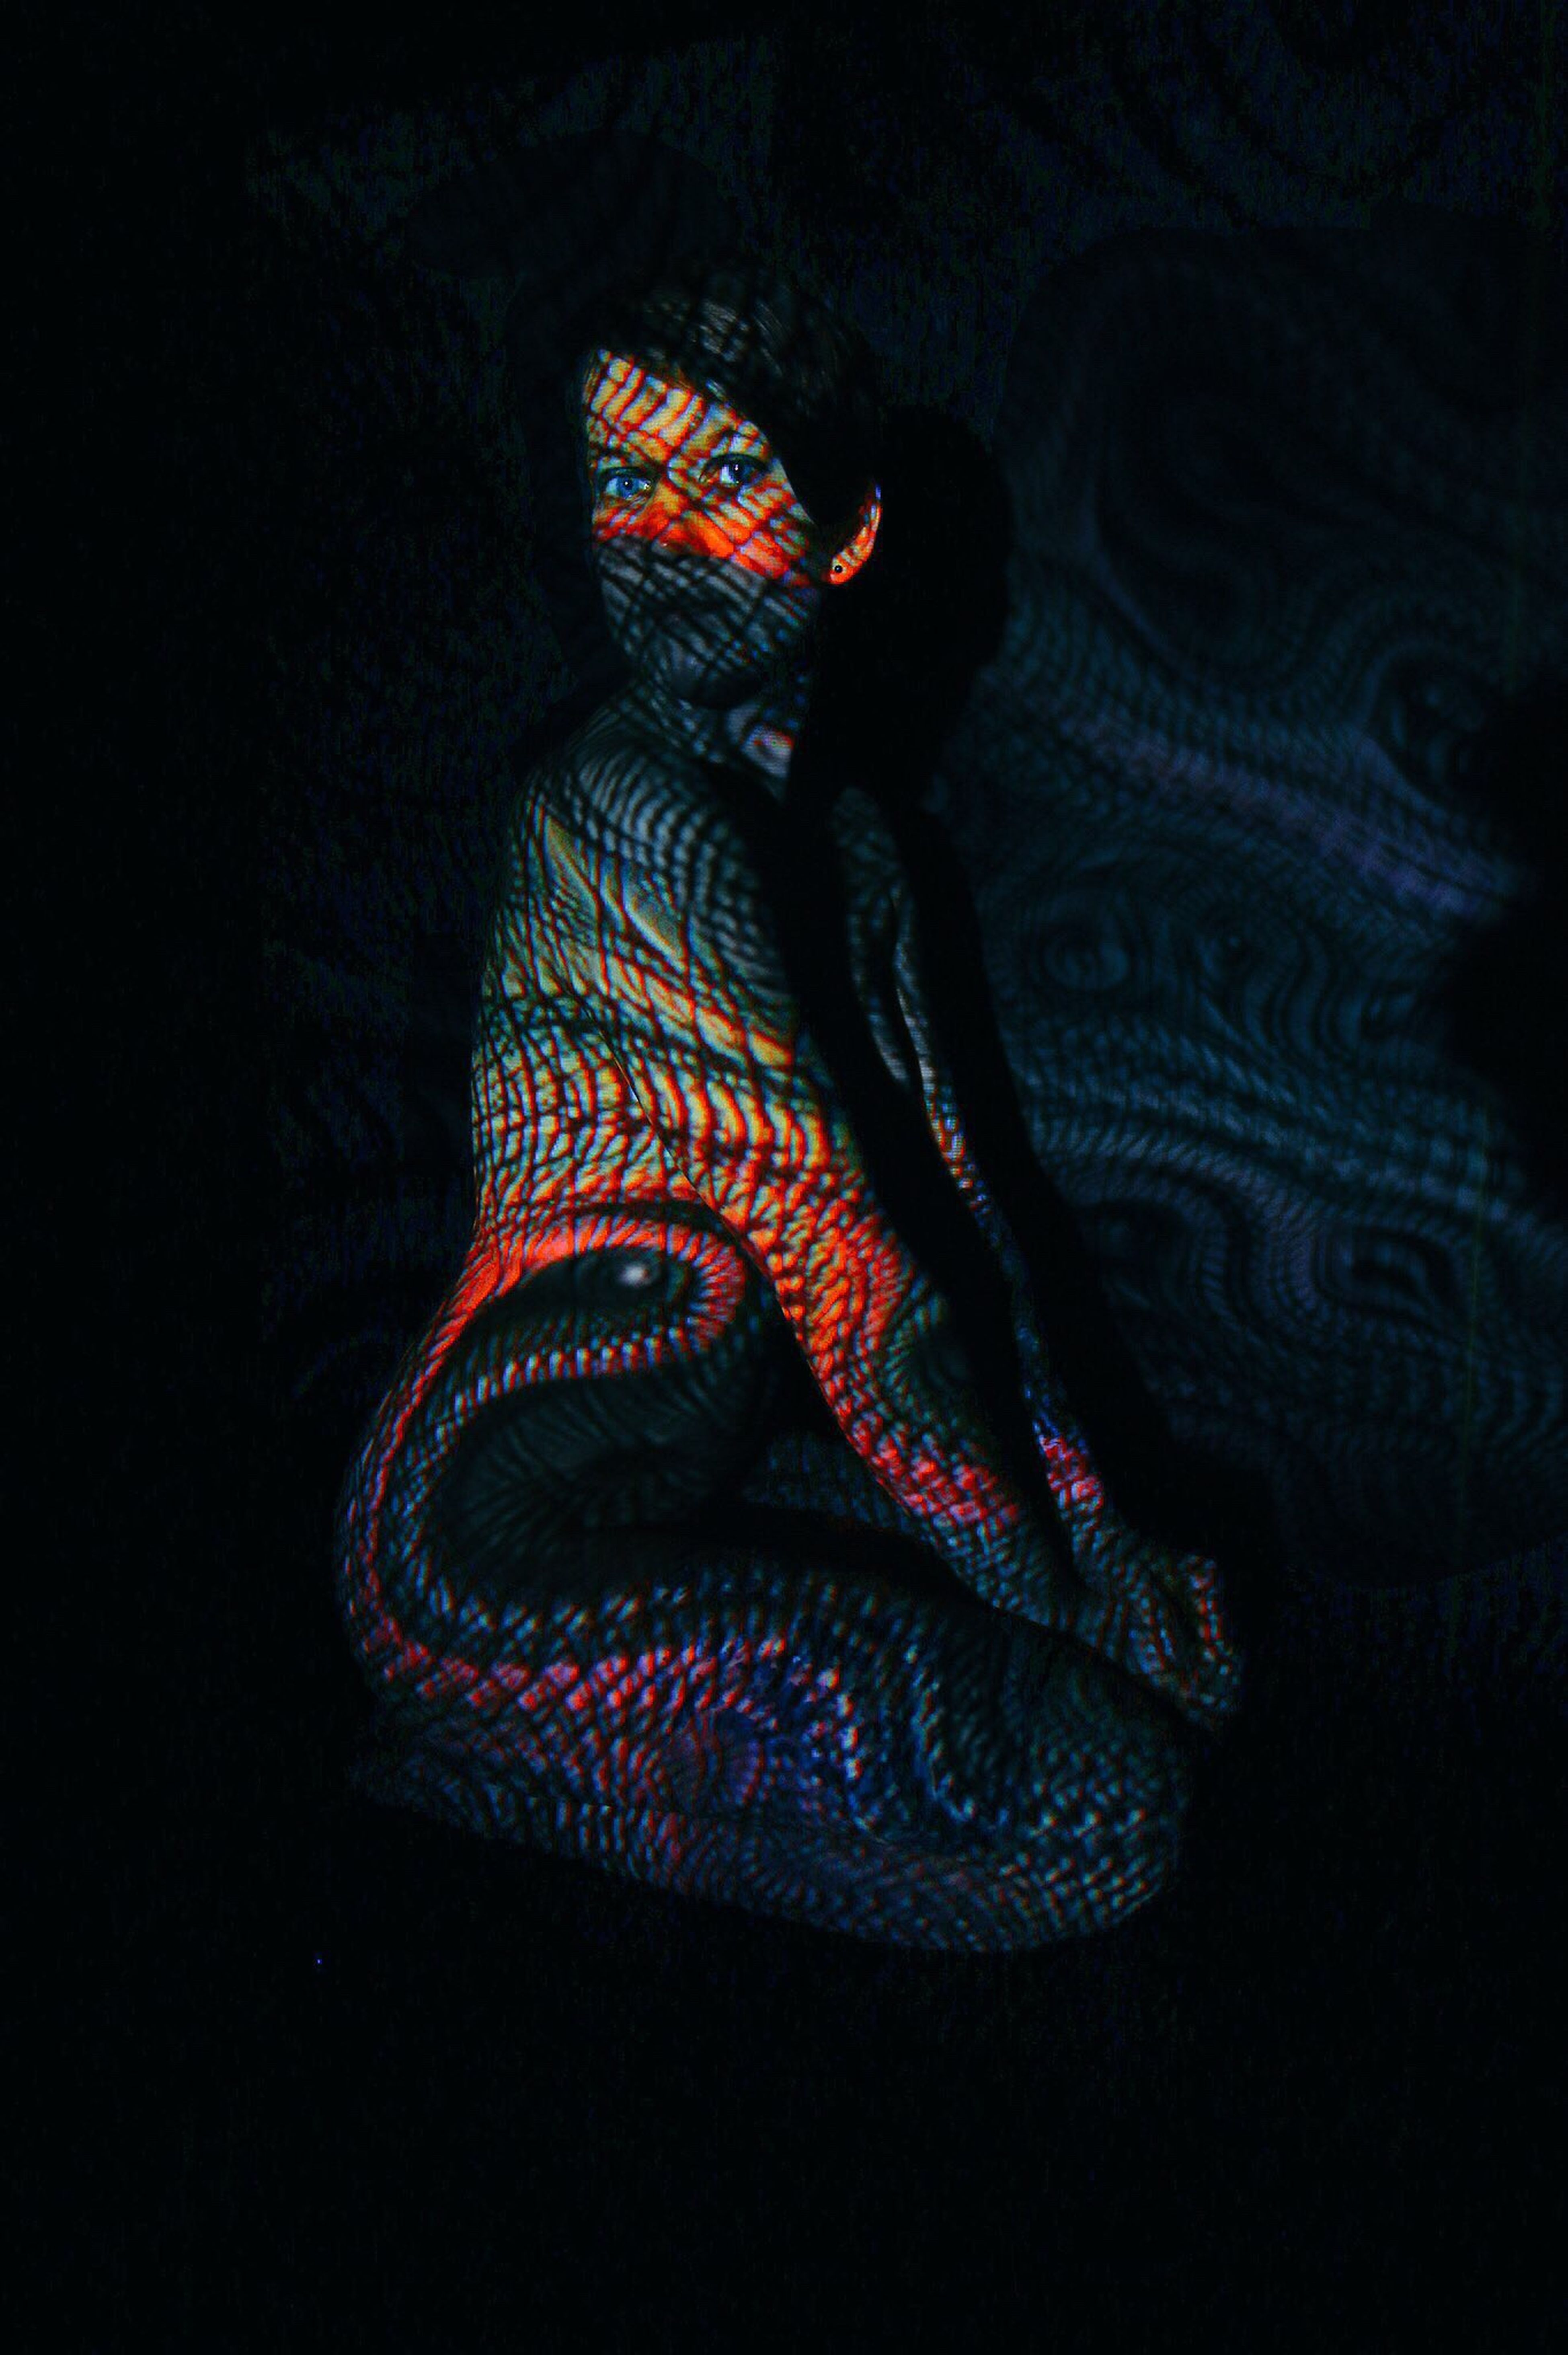 Bodylightpainting Shooting Model Colorshooting M.a.photografie Fuldatal Canon 70d